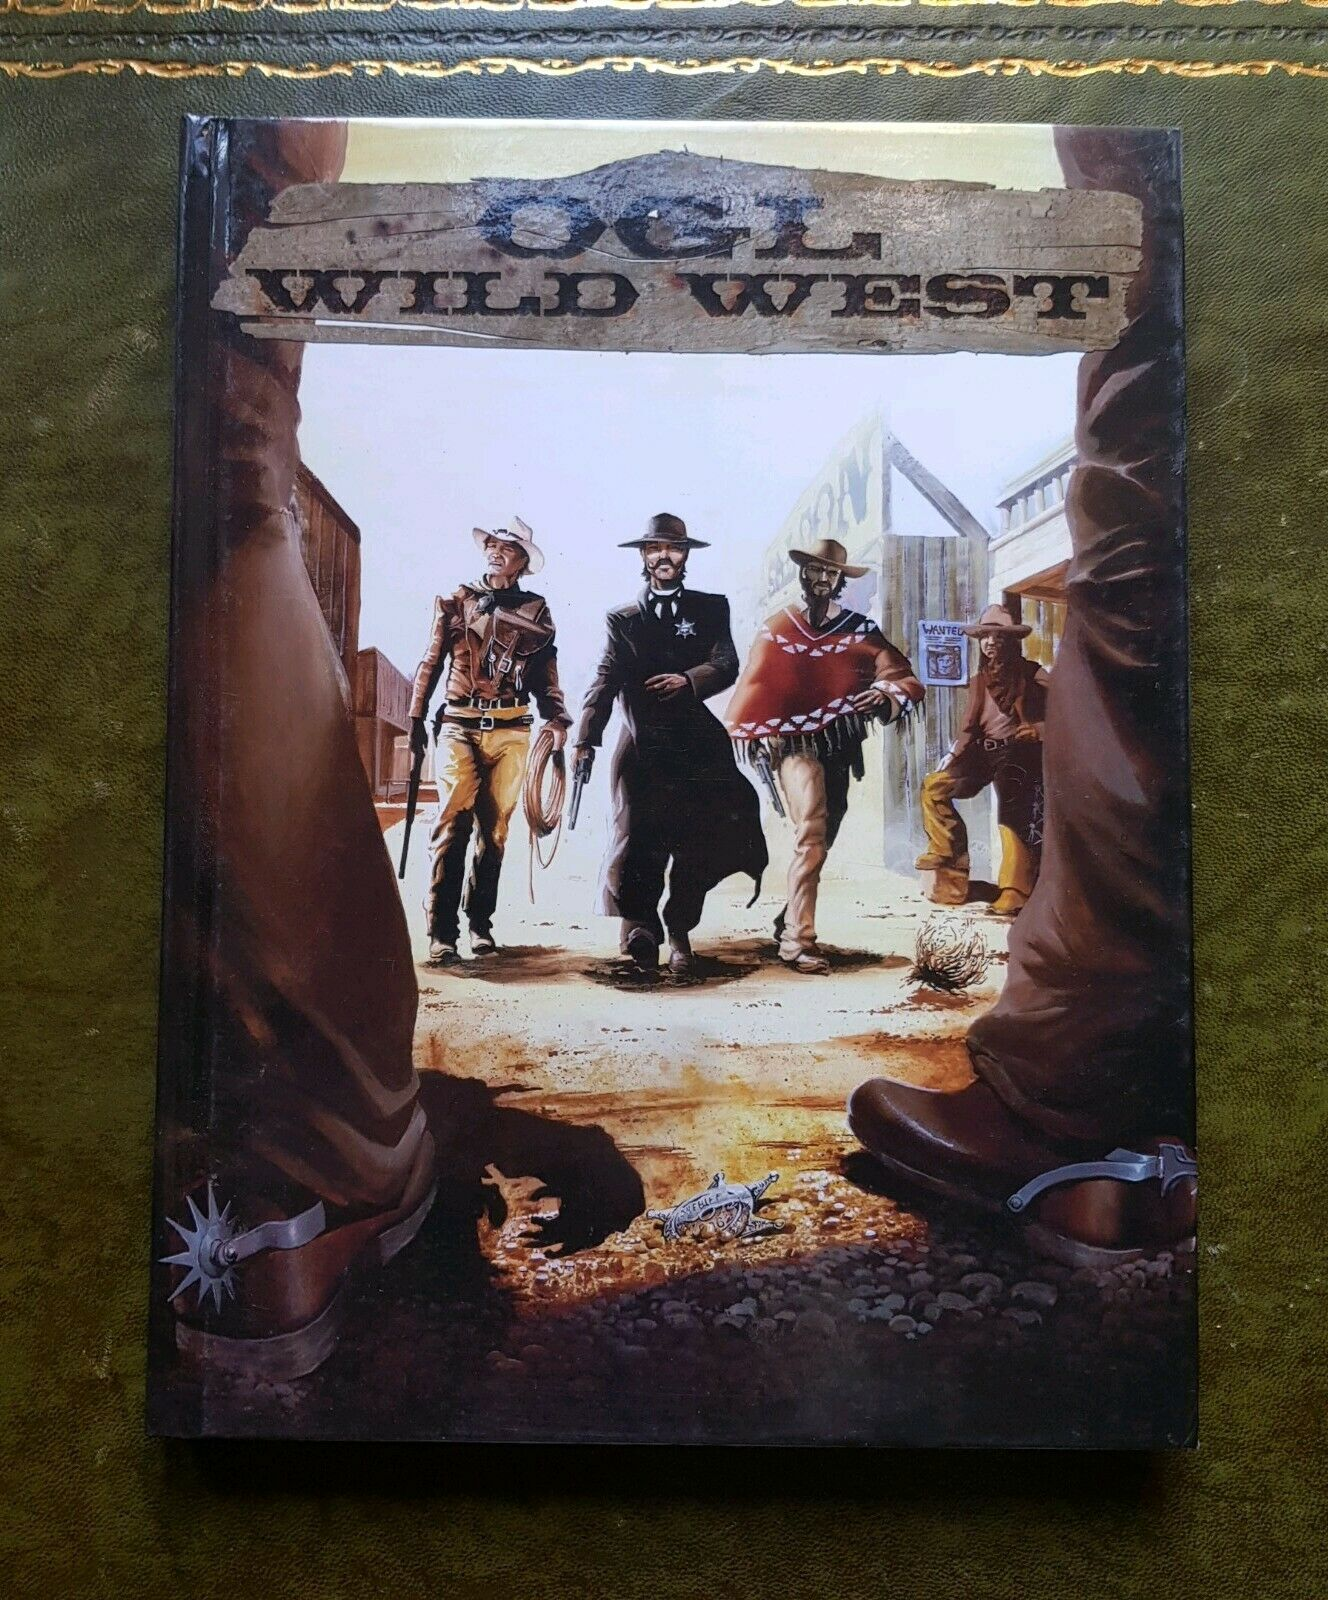 OGL WILD WEST - CORE CORE CORE BOOK RPG ROLEPLAYING DND D20 D&D 3 3.5 ROLEPLAY WESTERN 6bc01d